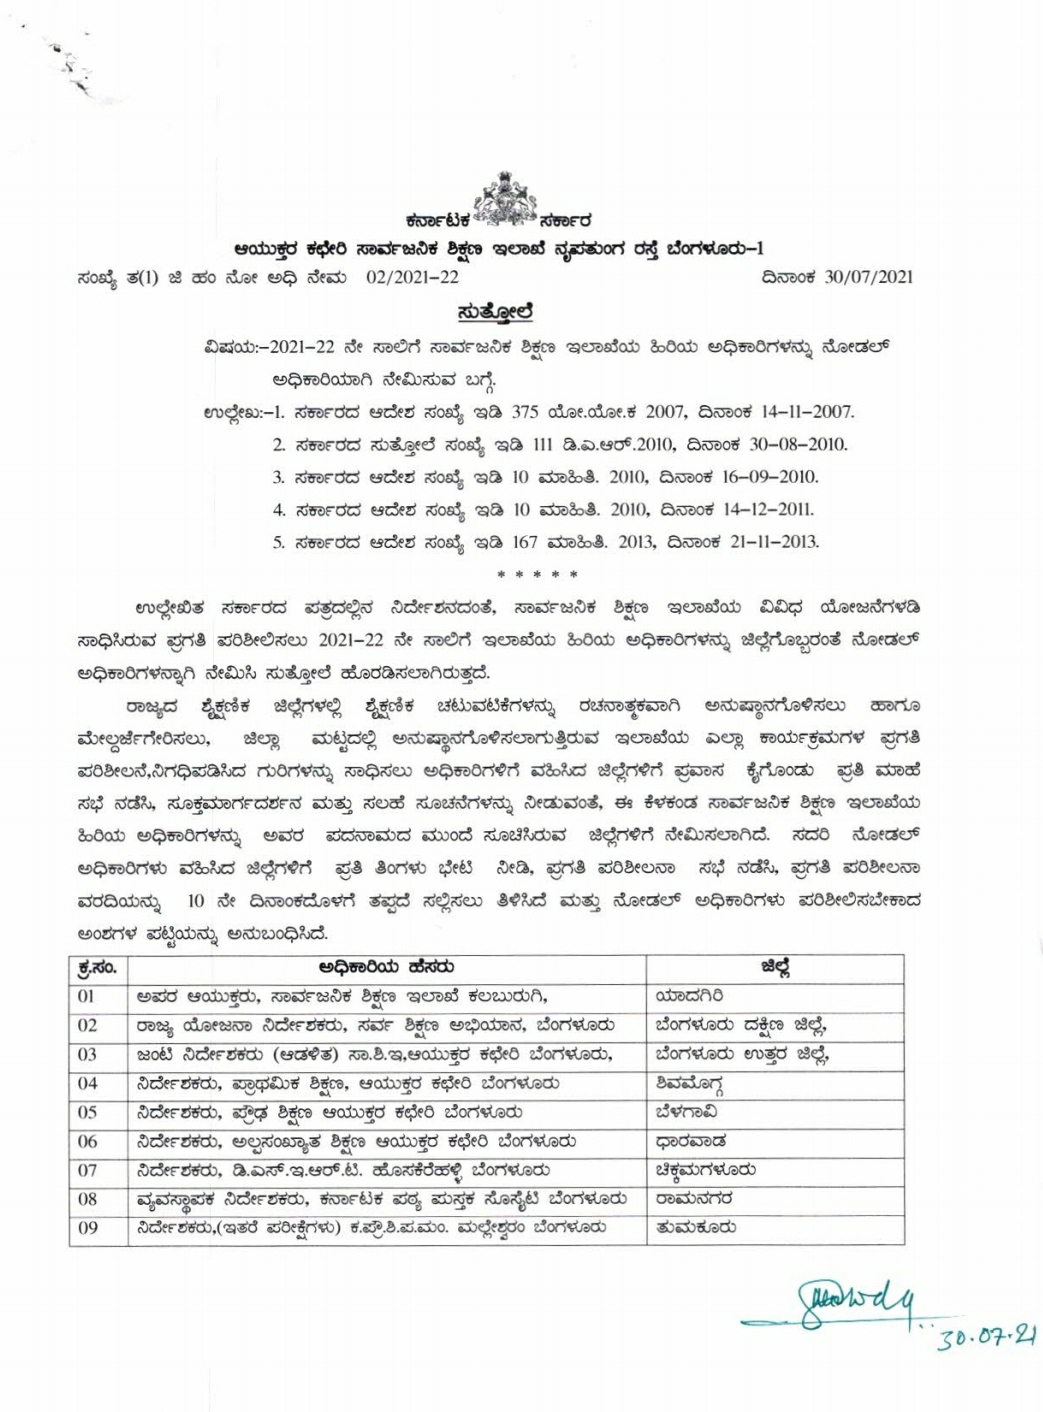 To appoint senior officers of the public education department as nodal officers for the year 2021-22